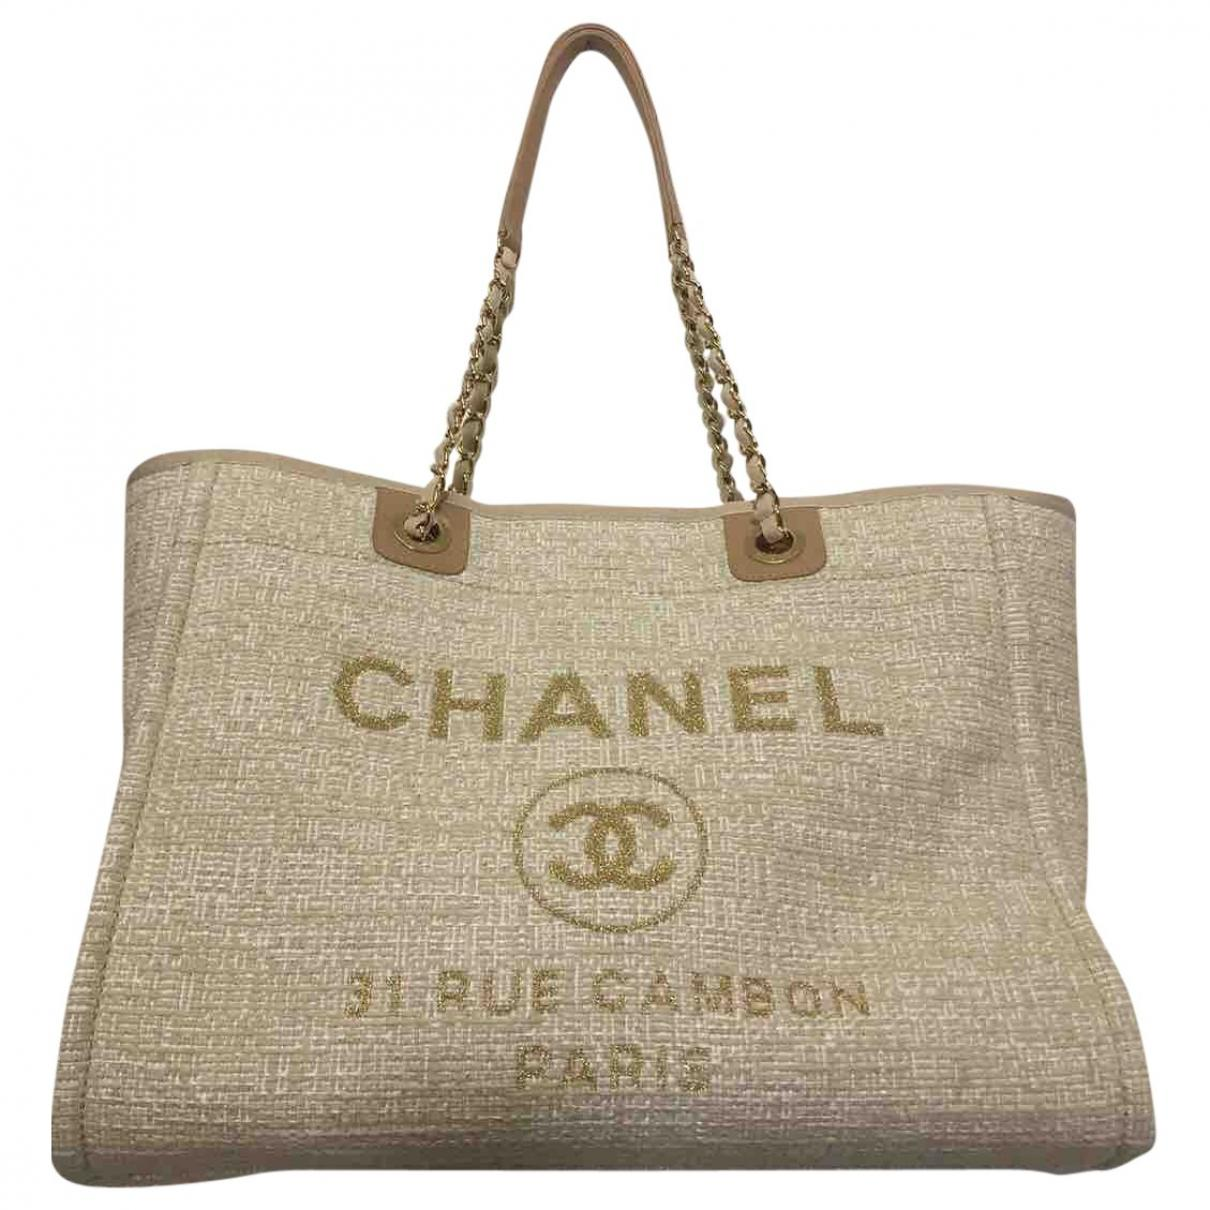 f2bc749e87975d Chanel Deauville Tweed Tote in Natural - Lyst